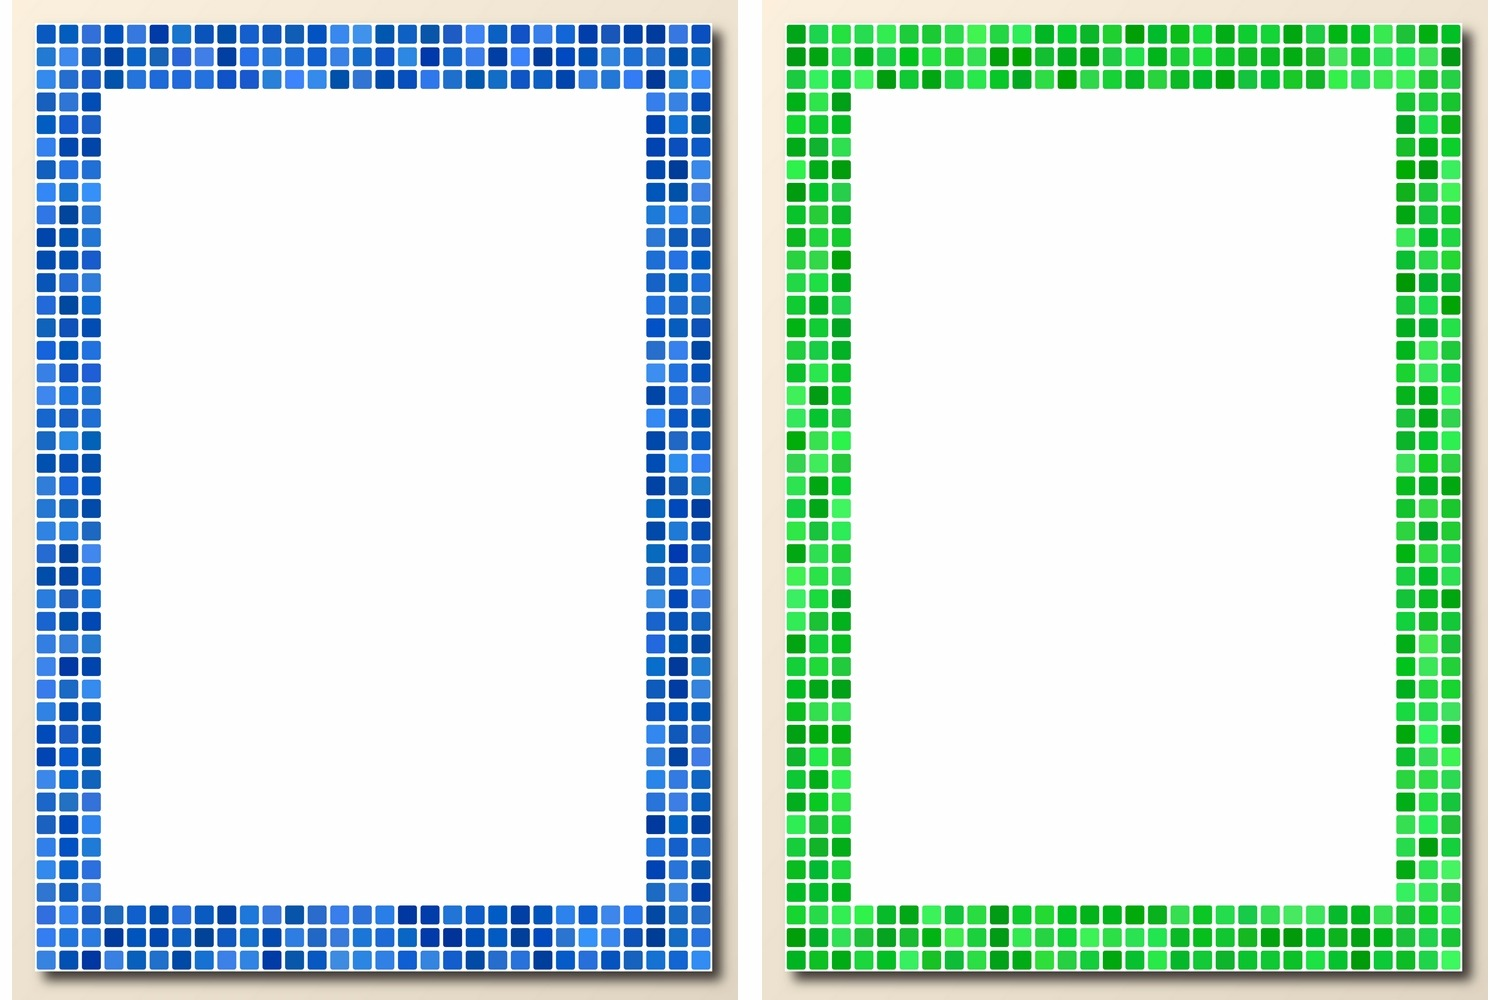 30 pixel mosaic page frames (AI, EPS, JPG 5000x5000) example image 2